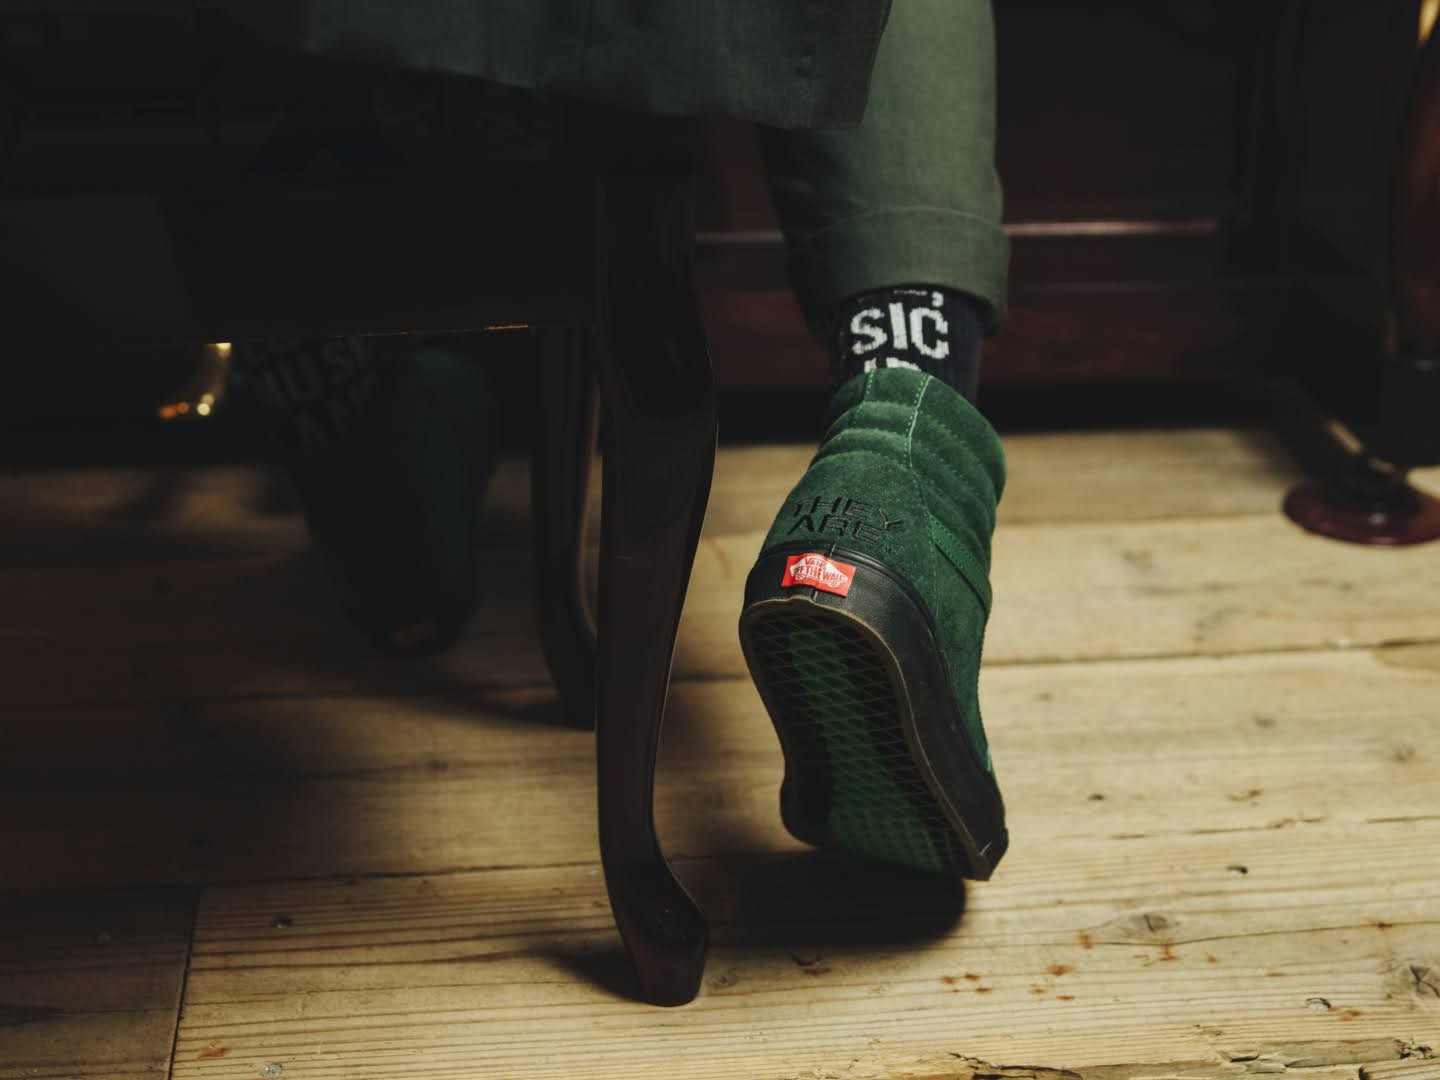 """VANS × THEY ARE """"THE YEAR OF THE OX"""" Collection】バンズ × ゼイ アー """"ザ イヤー オブ ザ OX"""" コレクション sneakers green"""